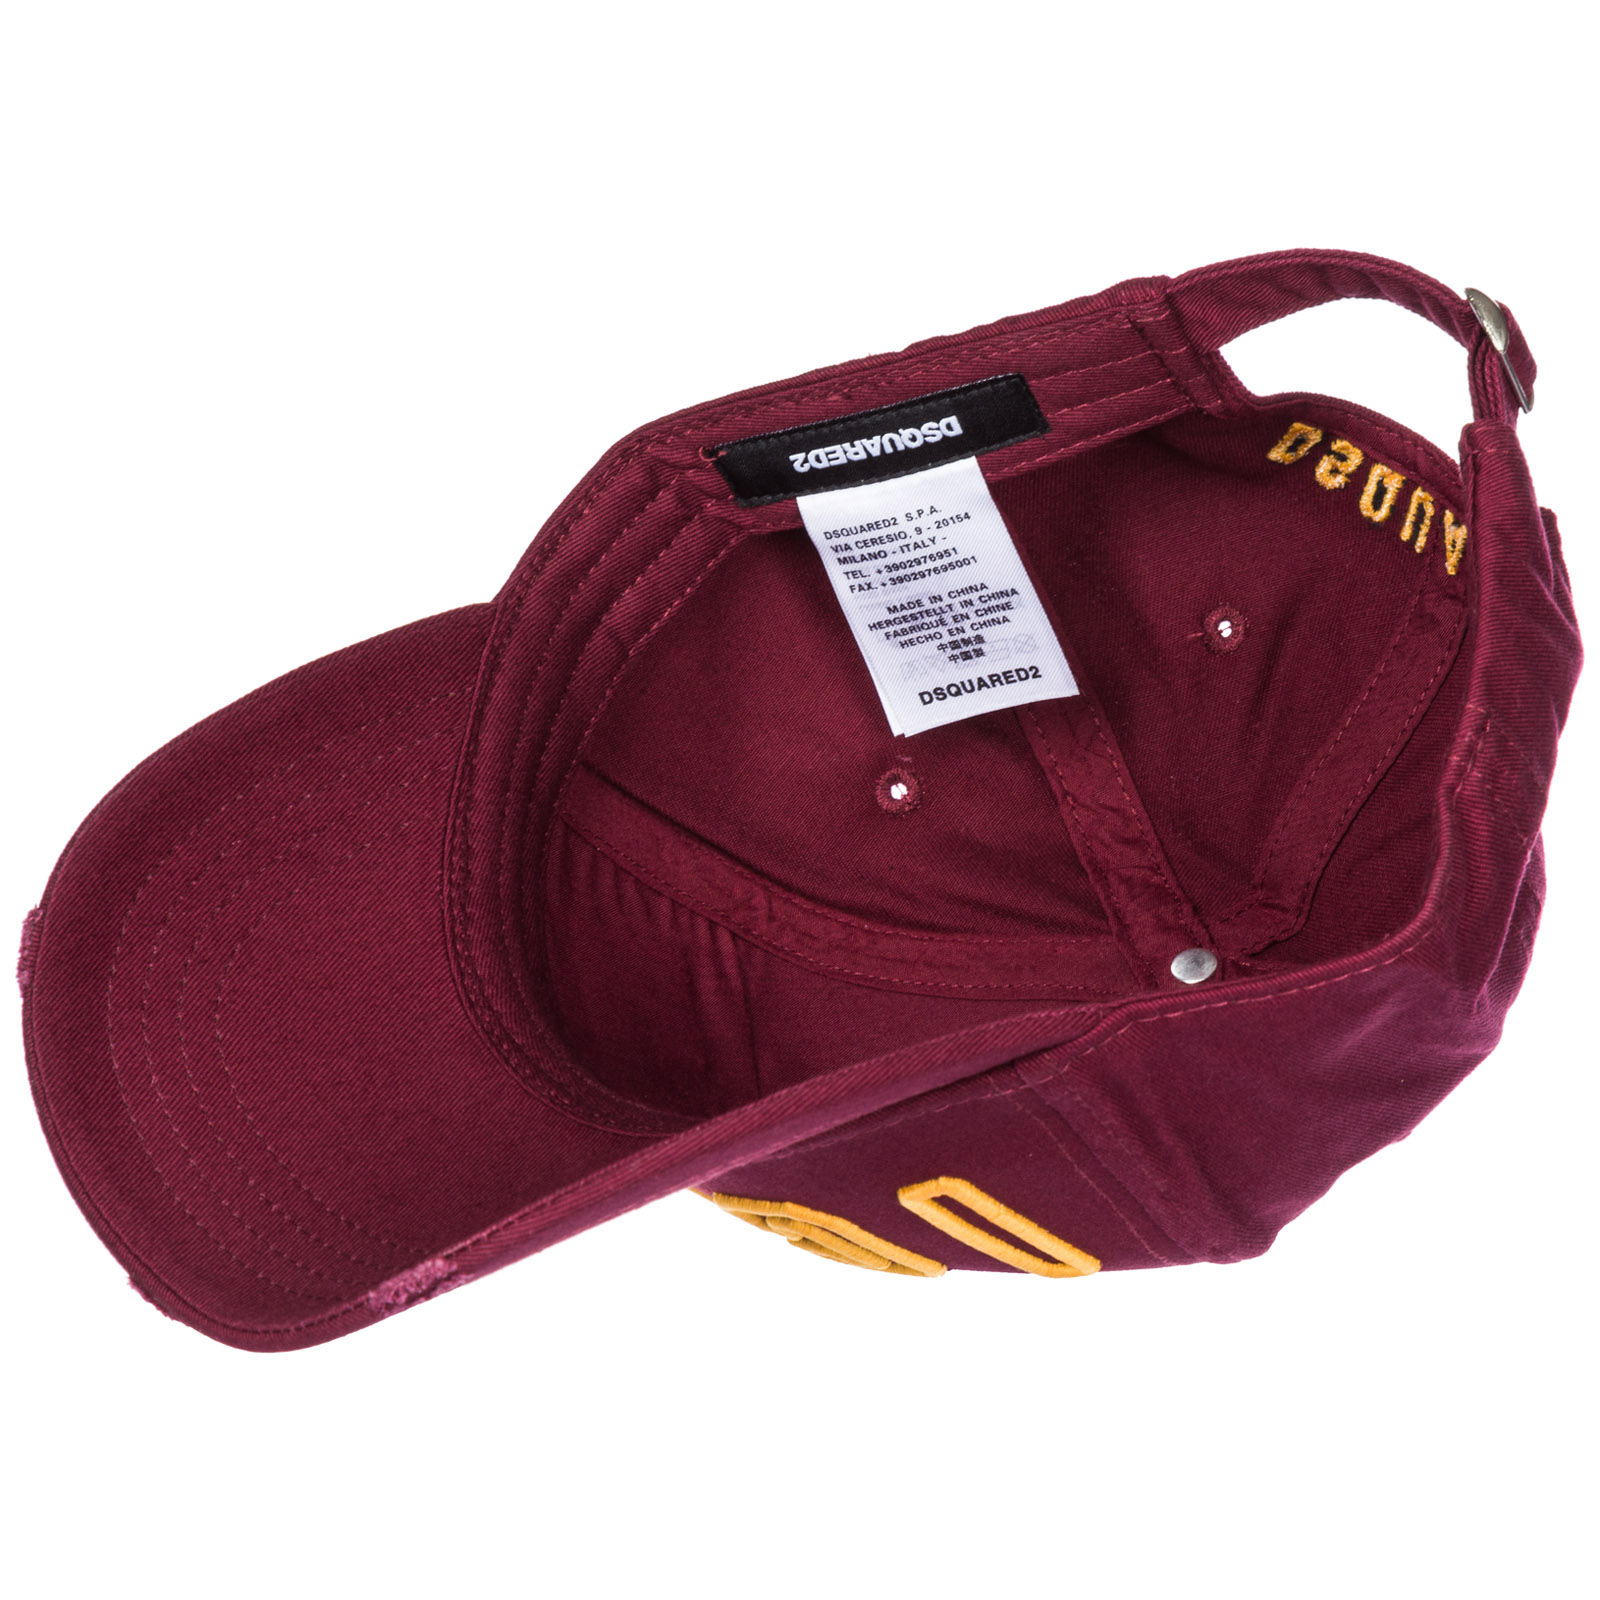 9531e8ee3bdc Casquette baseball Dsquared2 Icon BCM007905C00001M1498 bordeaux ...